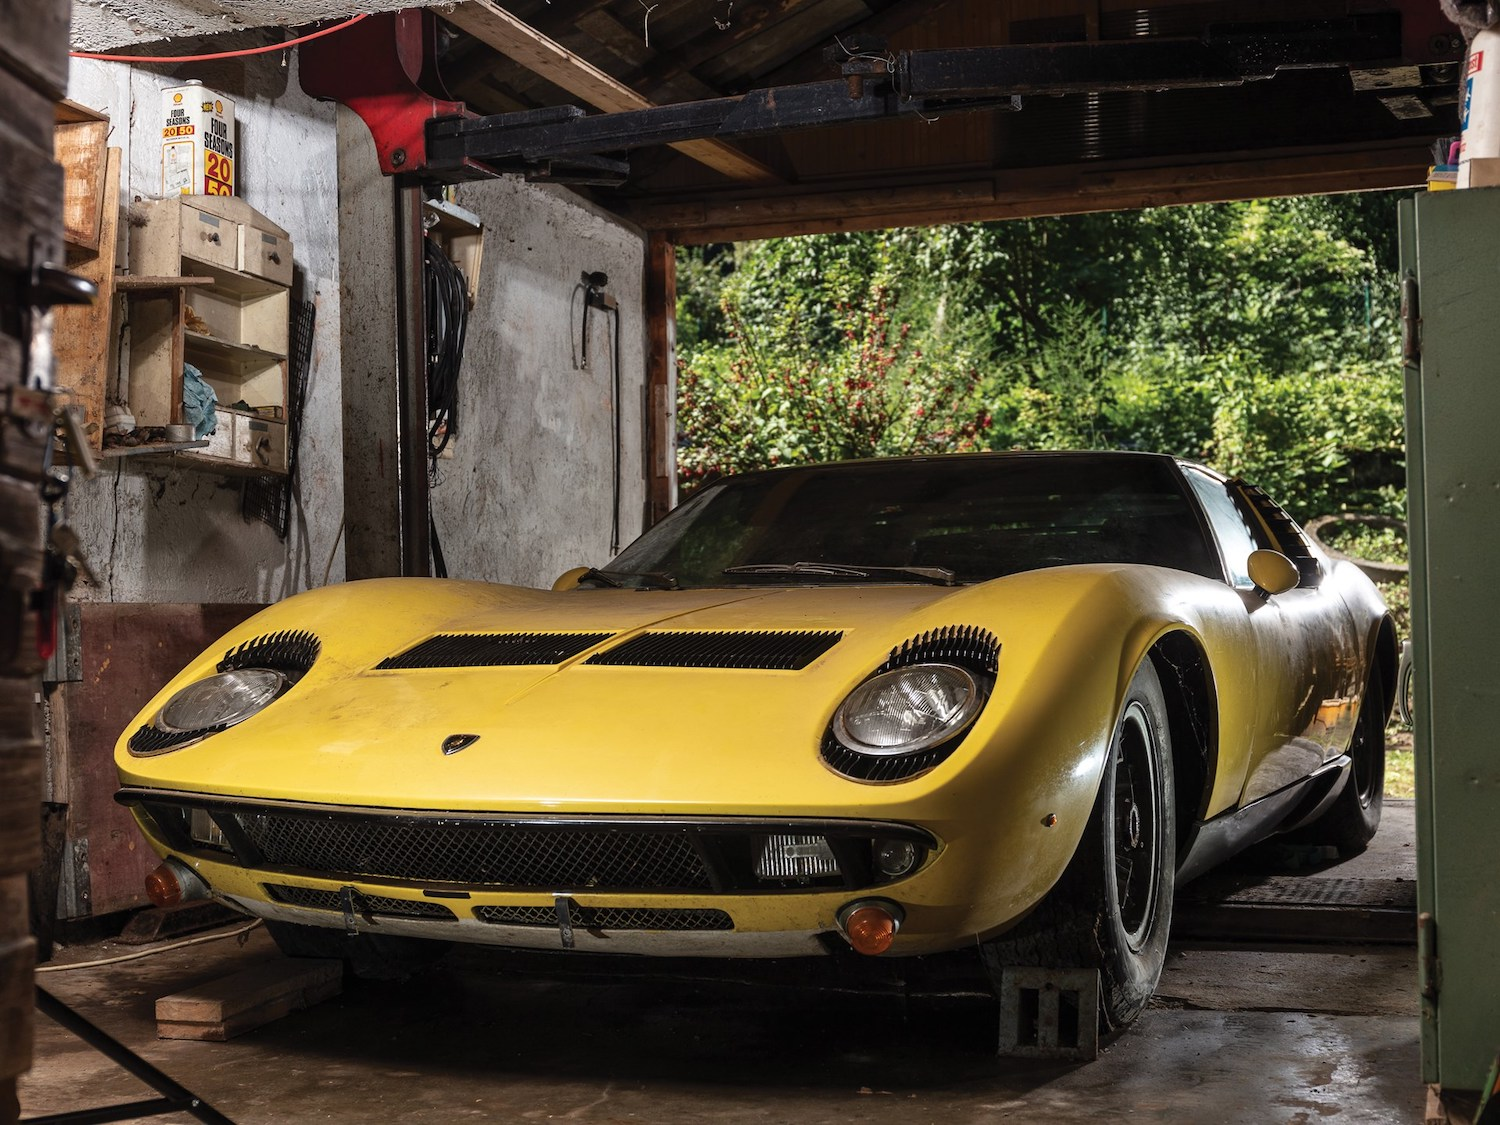 Grab your silk bathrobe, there's a Miura on the block